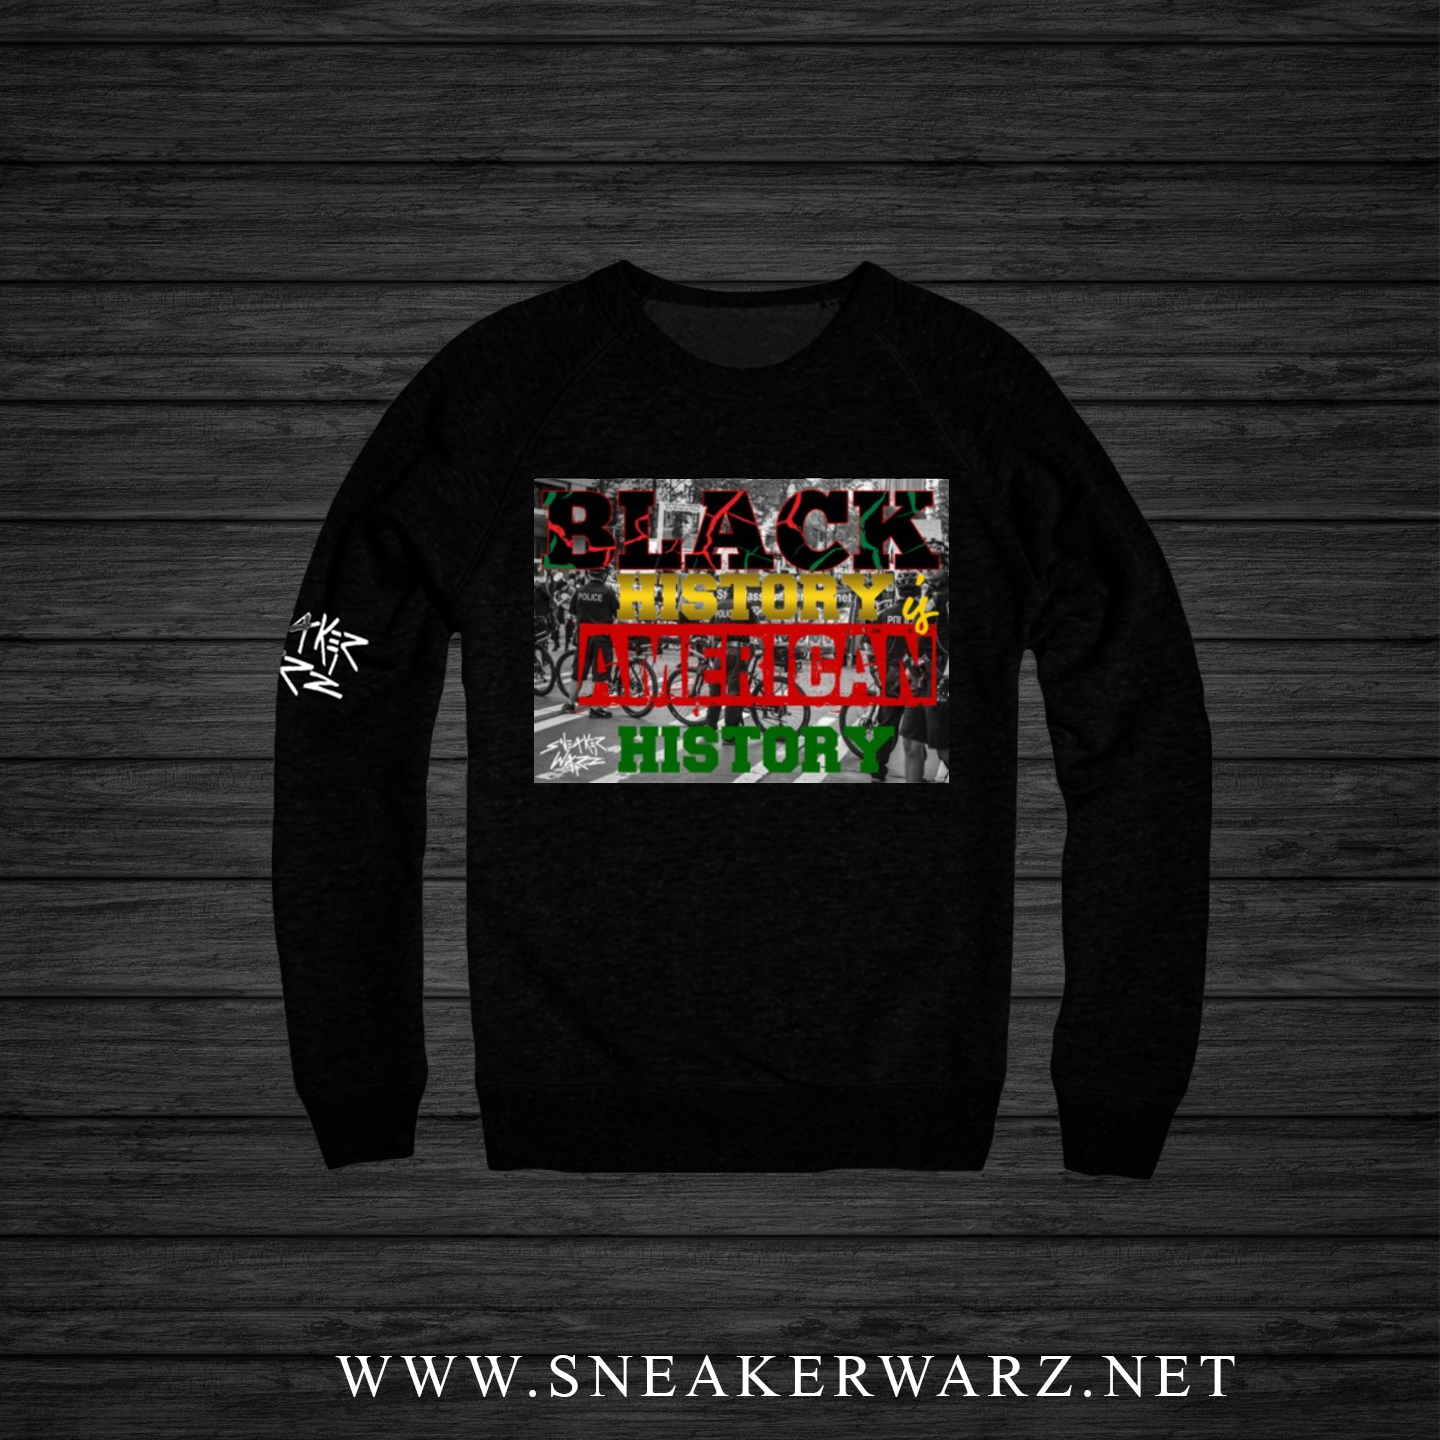 Black History Month (Crewneck)